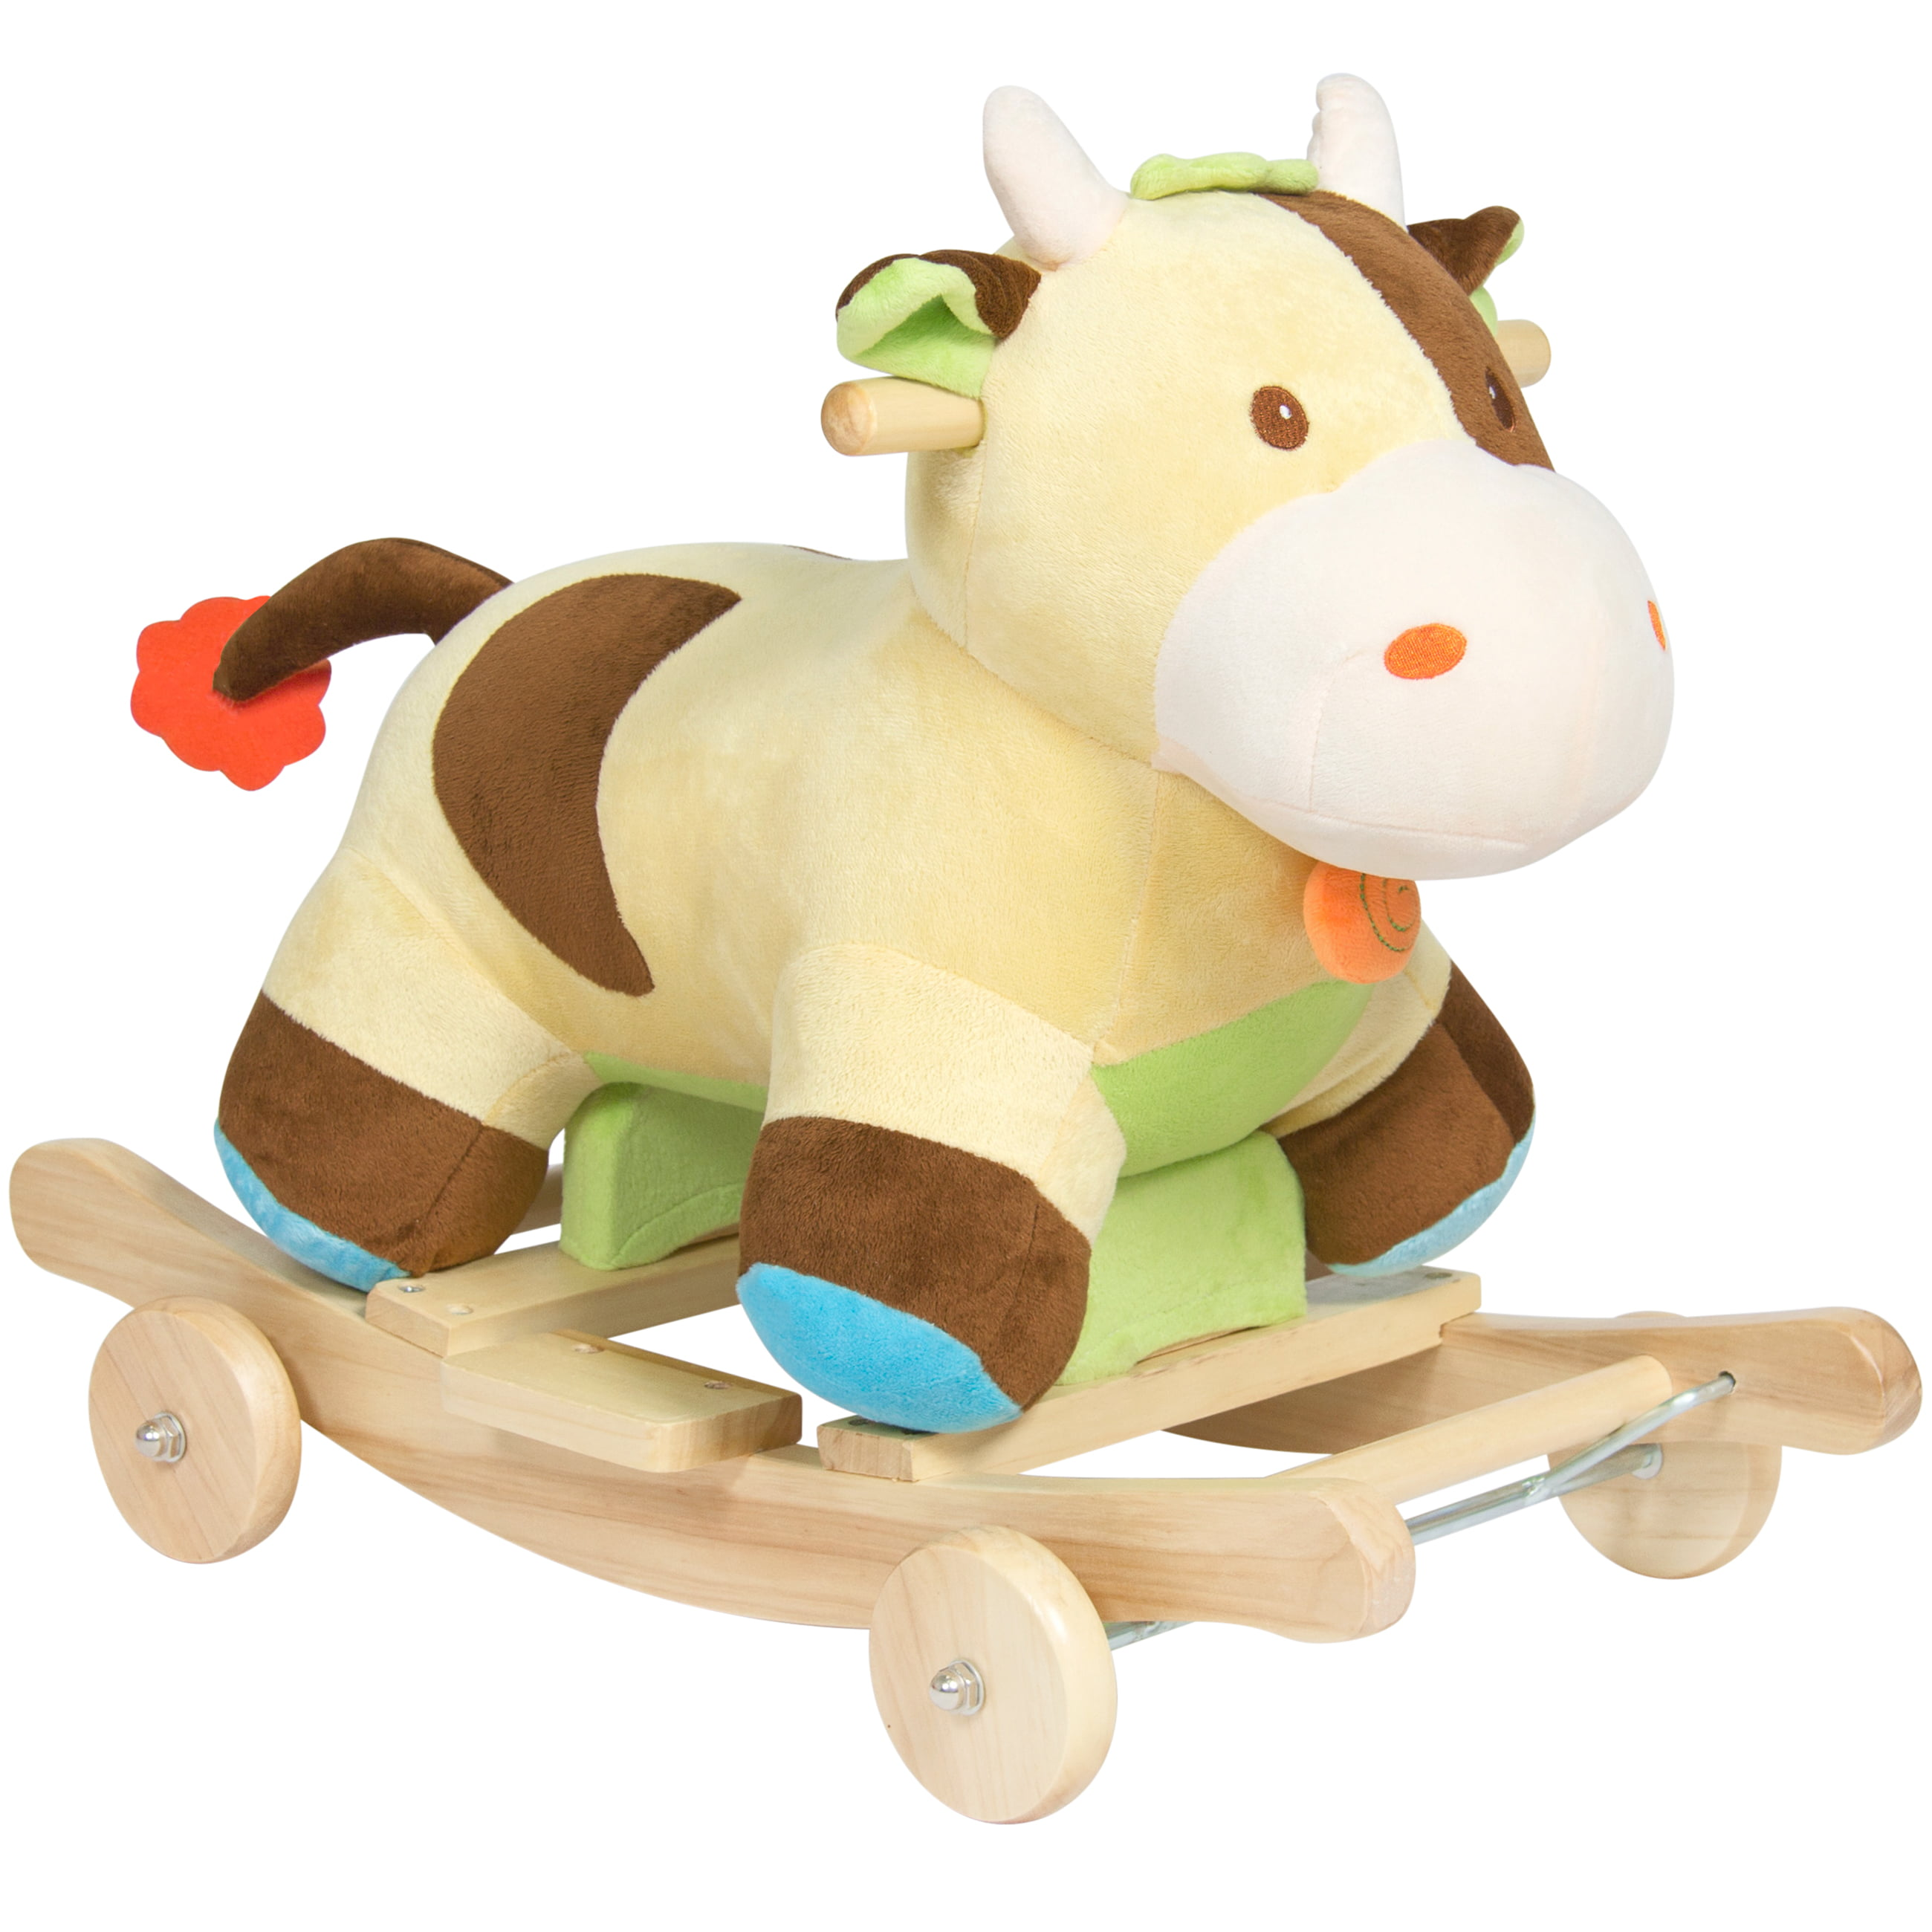 Best Choice Products Kids Plush Cow Animal Toy Rocking Chair W Wheels Green Brown Walmart Com Walmart Com